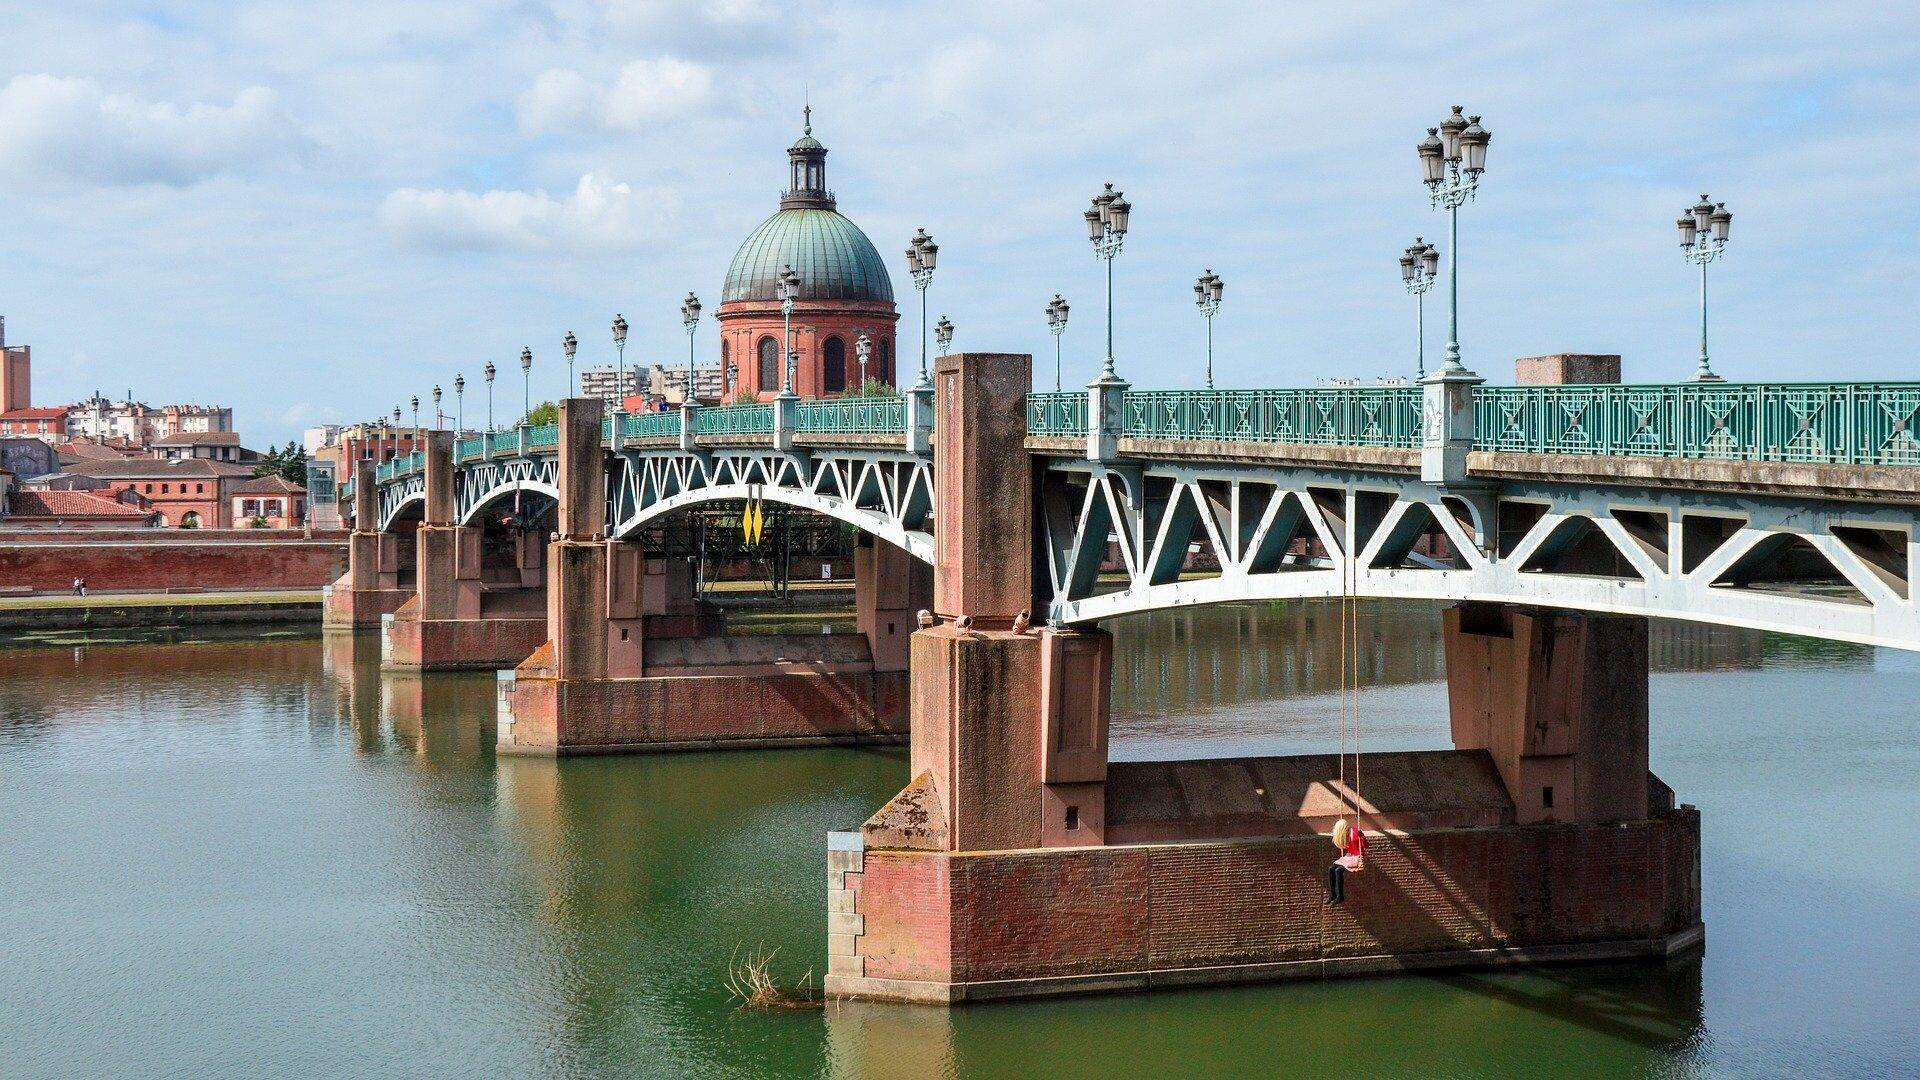 Toulouse brug